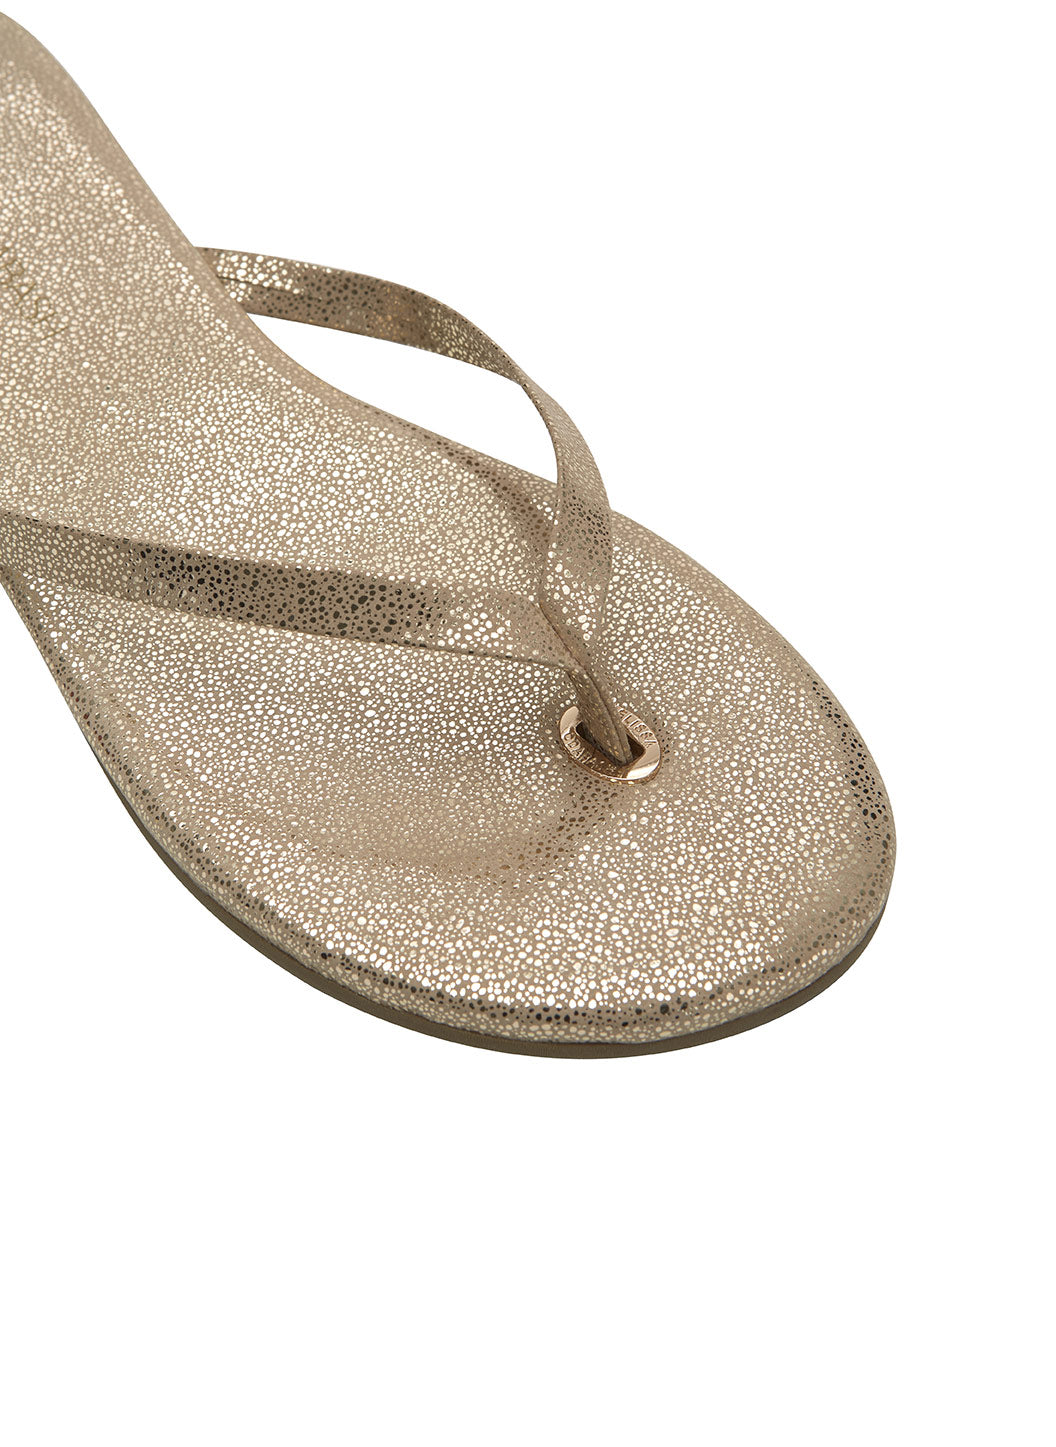 Melissa Odabash Leather Flip Flops Gold Sparkle